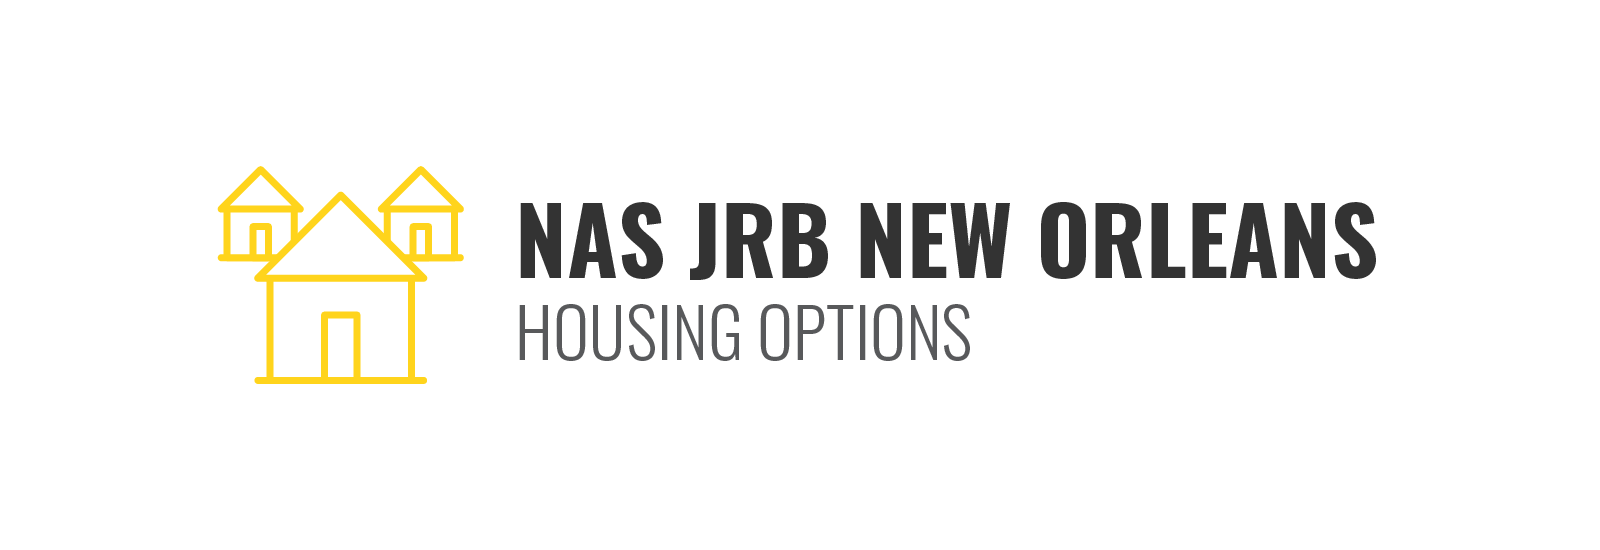 NAS JRB New Orleans Housing Options